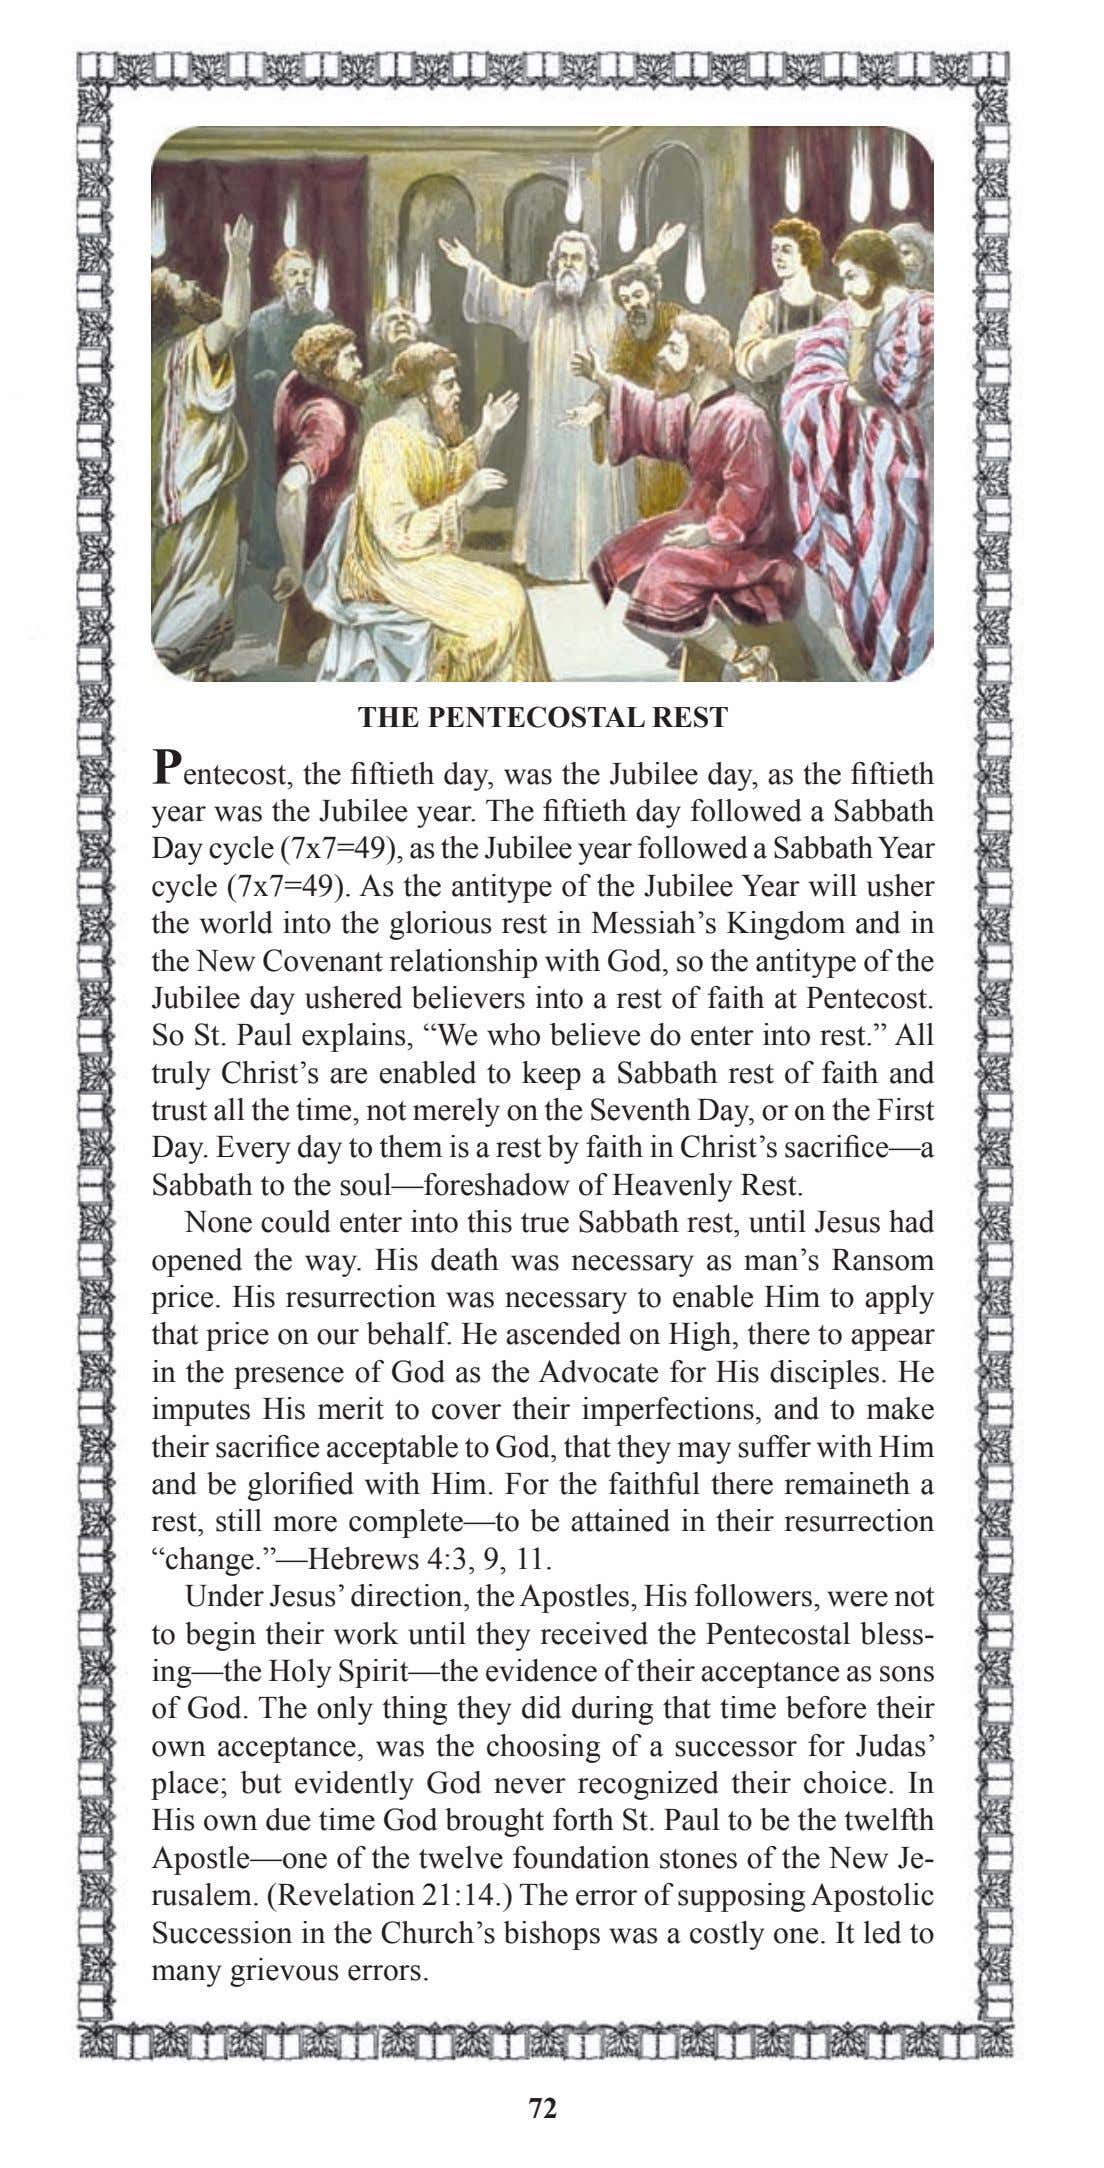 THE PENTECOSTAL REST Pentecost, the fiftieth day, was the Jubilee day, as the fiftieth year